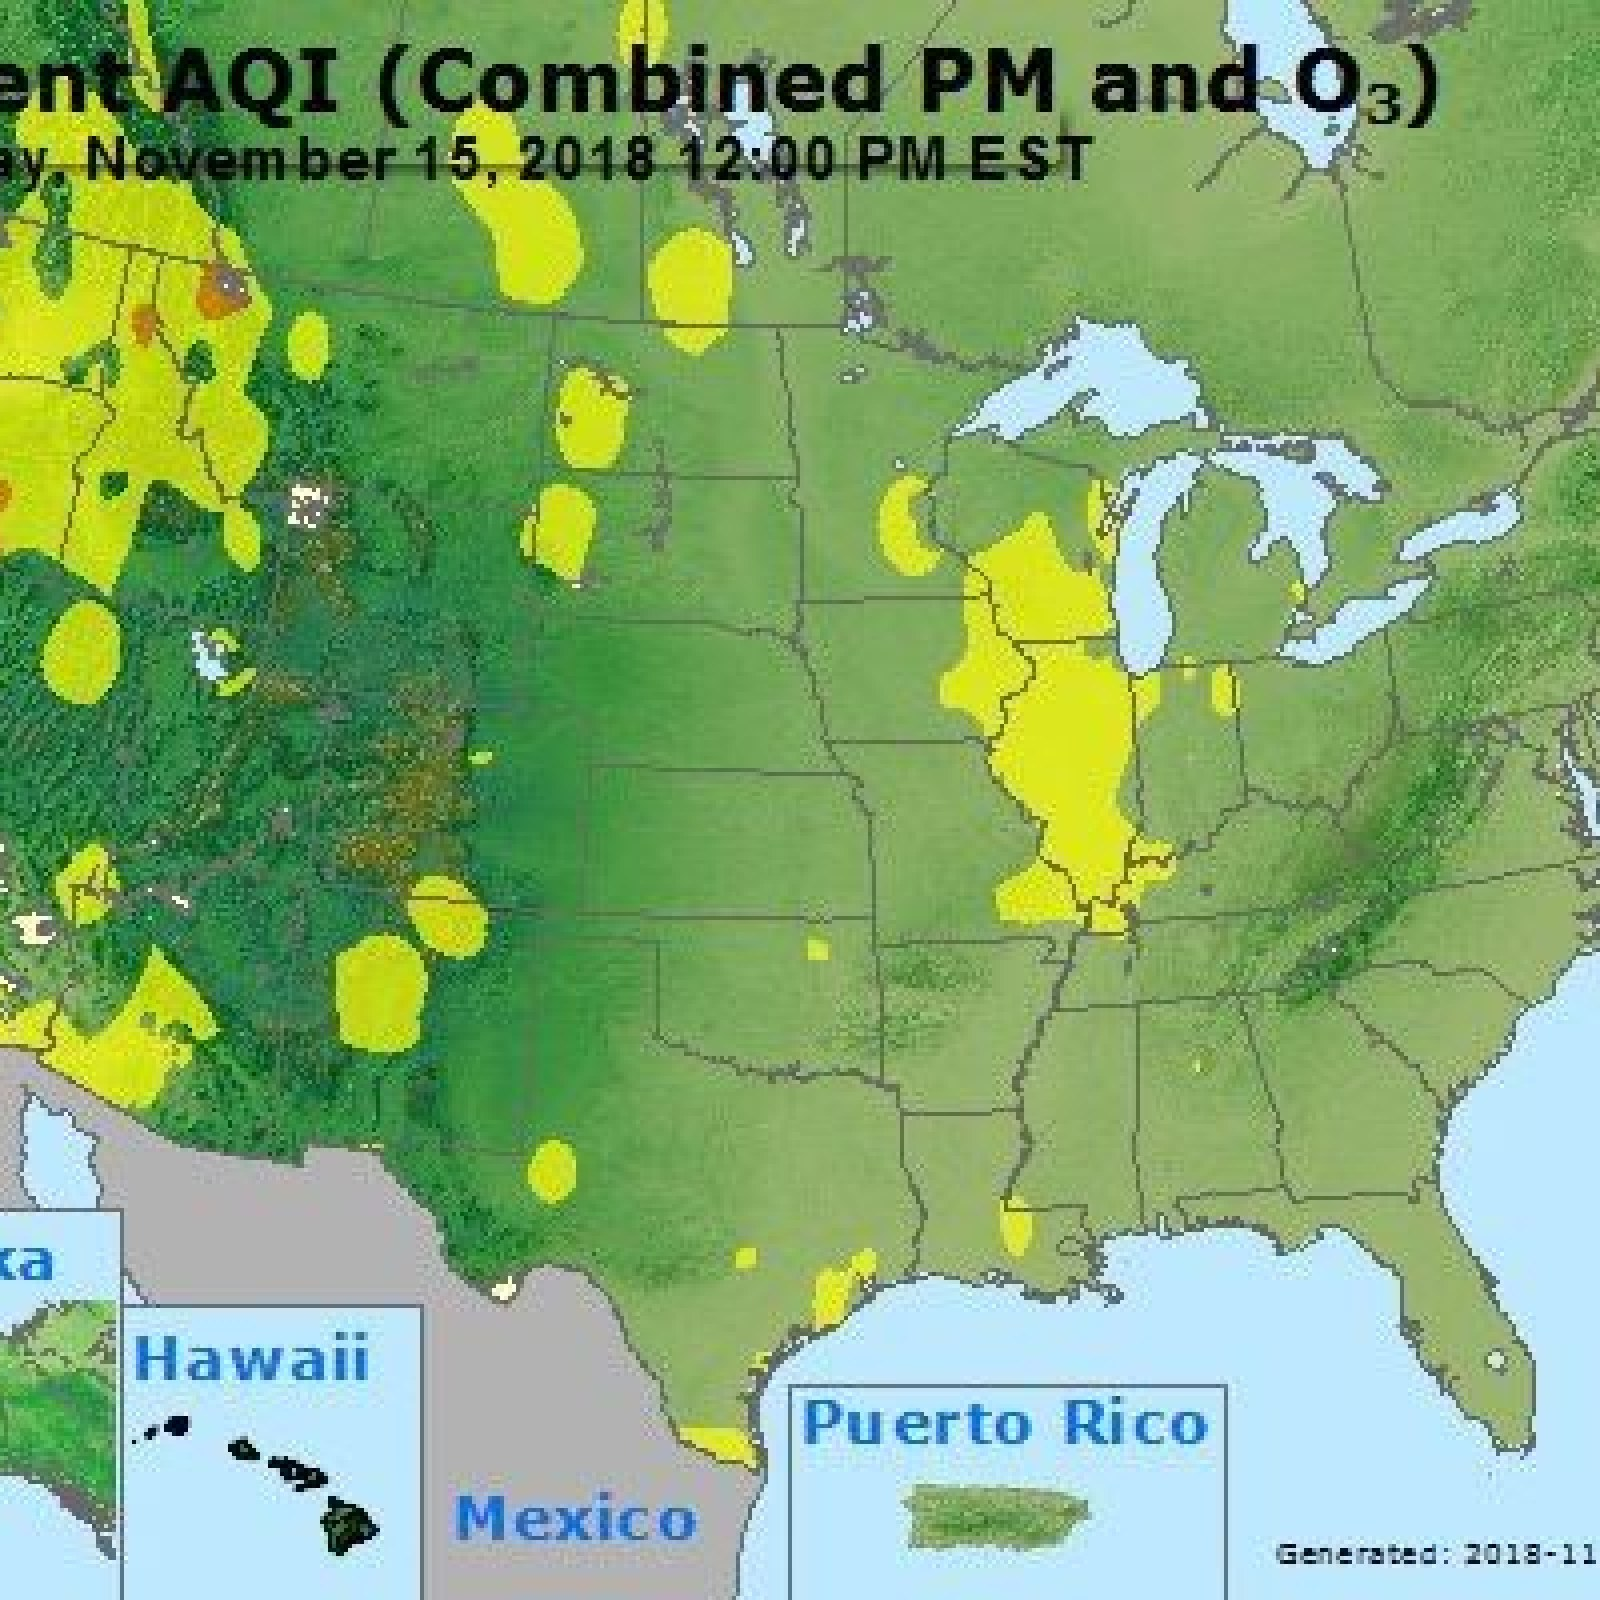 California Wildfire Smoke: Map, Health Concerns With Air ... on shadow map, fire map, mendocino county ca map, air map, current california wildfires 2013 map, lake mendocino map,